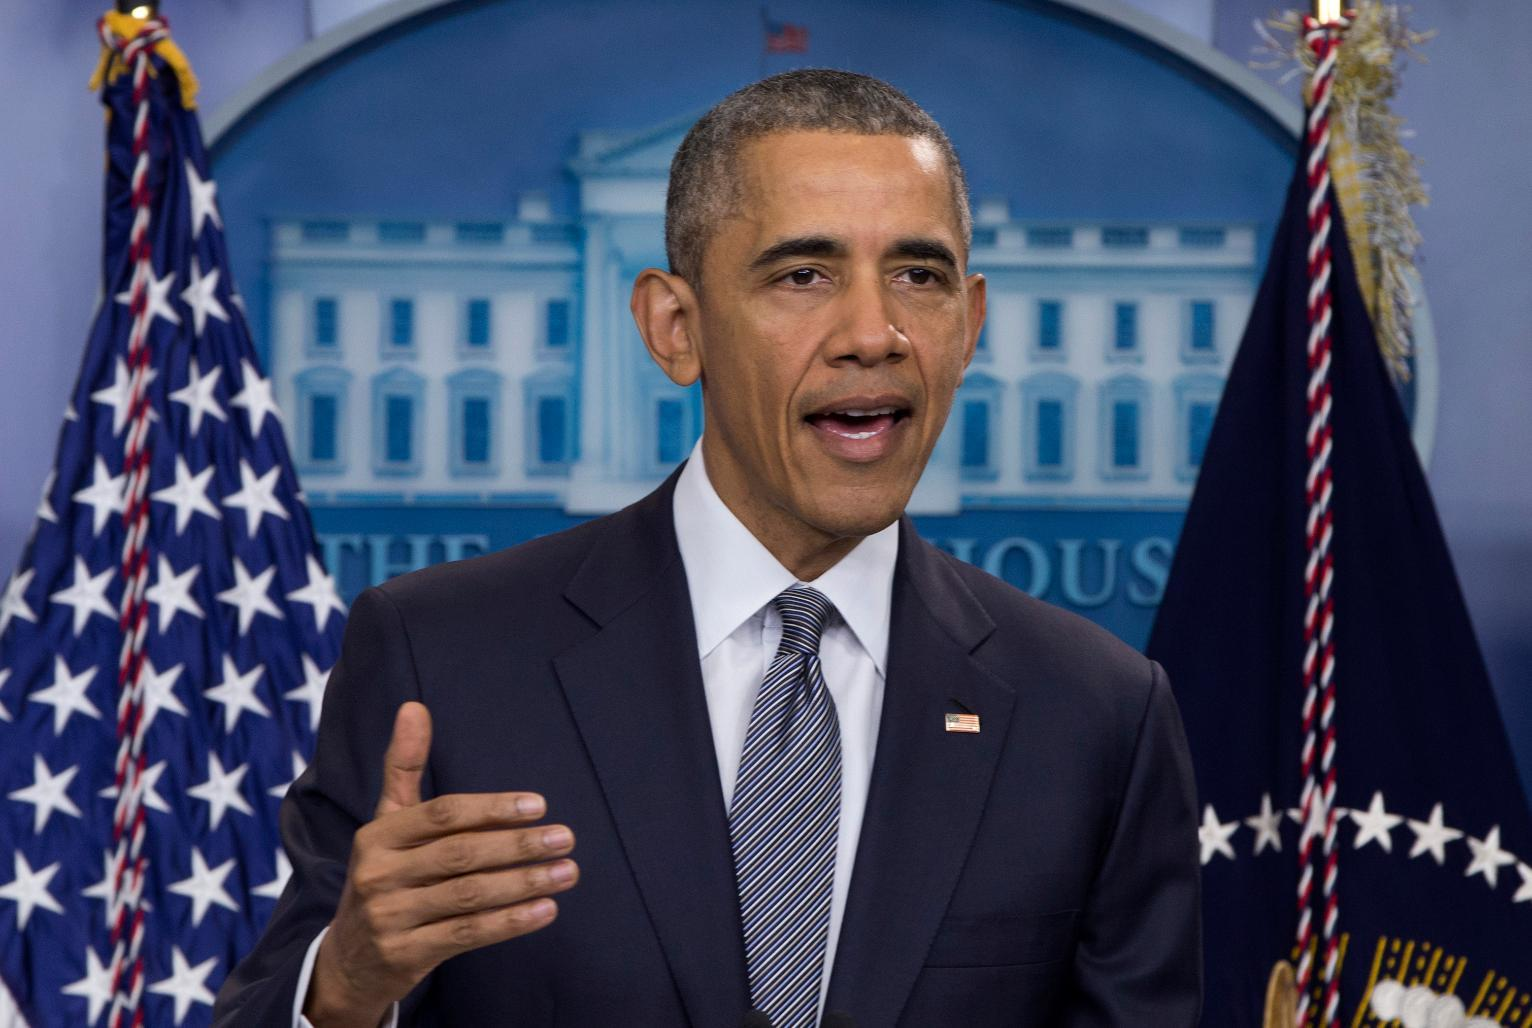 Obama Encourages Unity at White House Press Conference